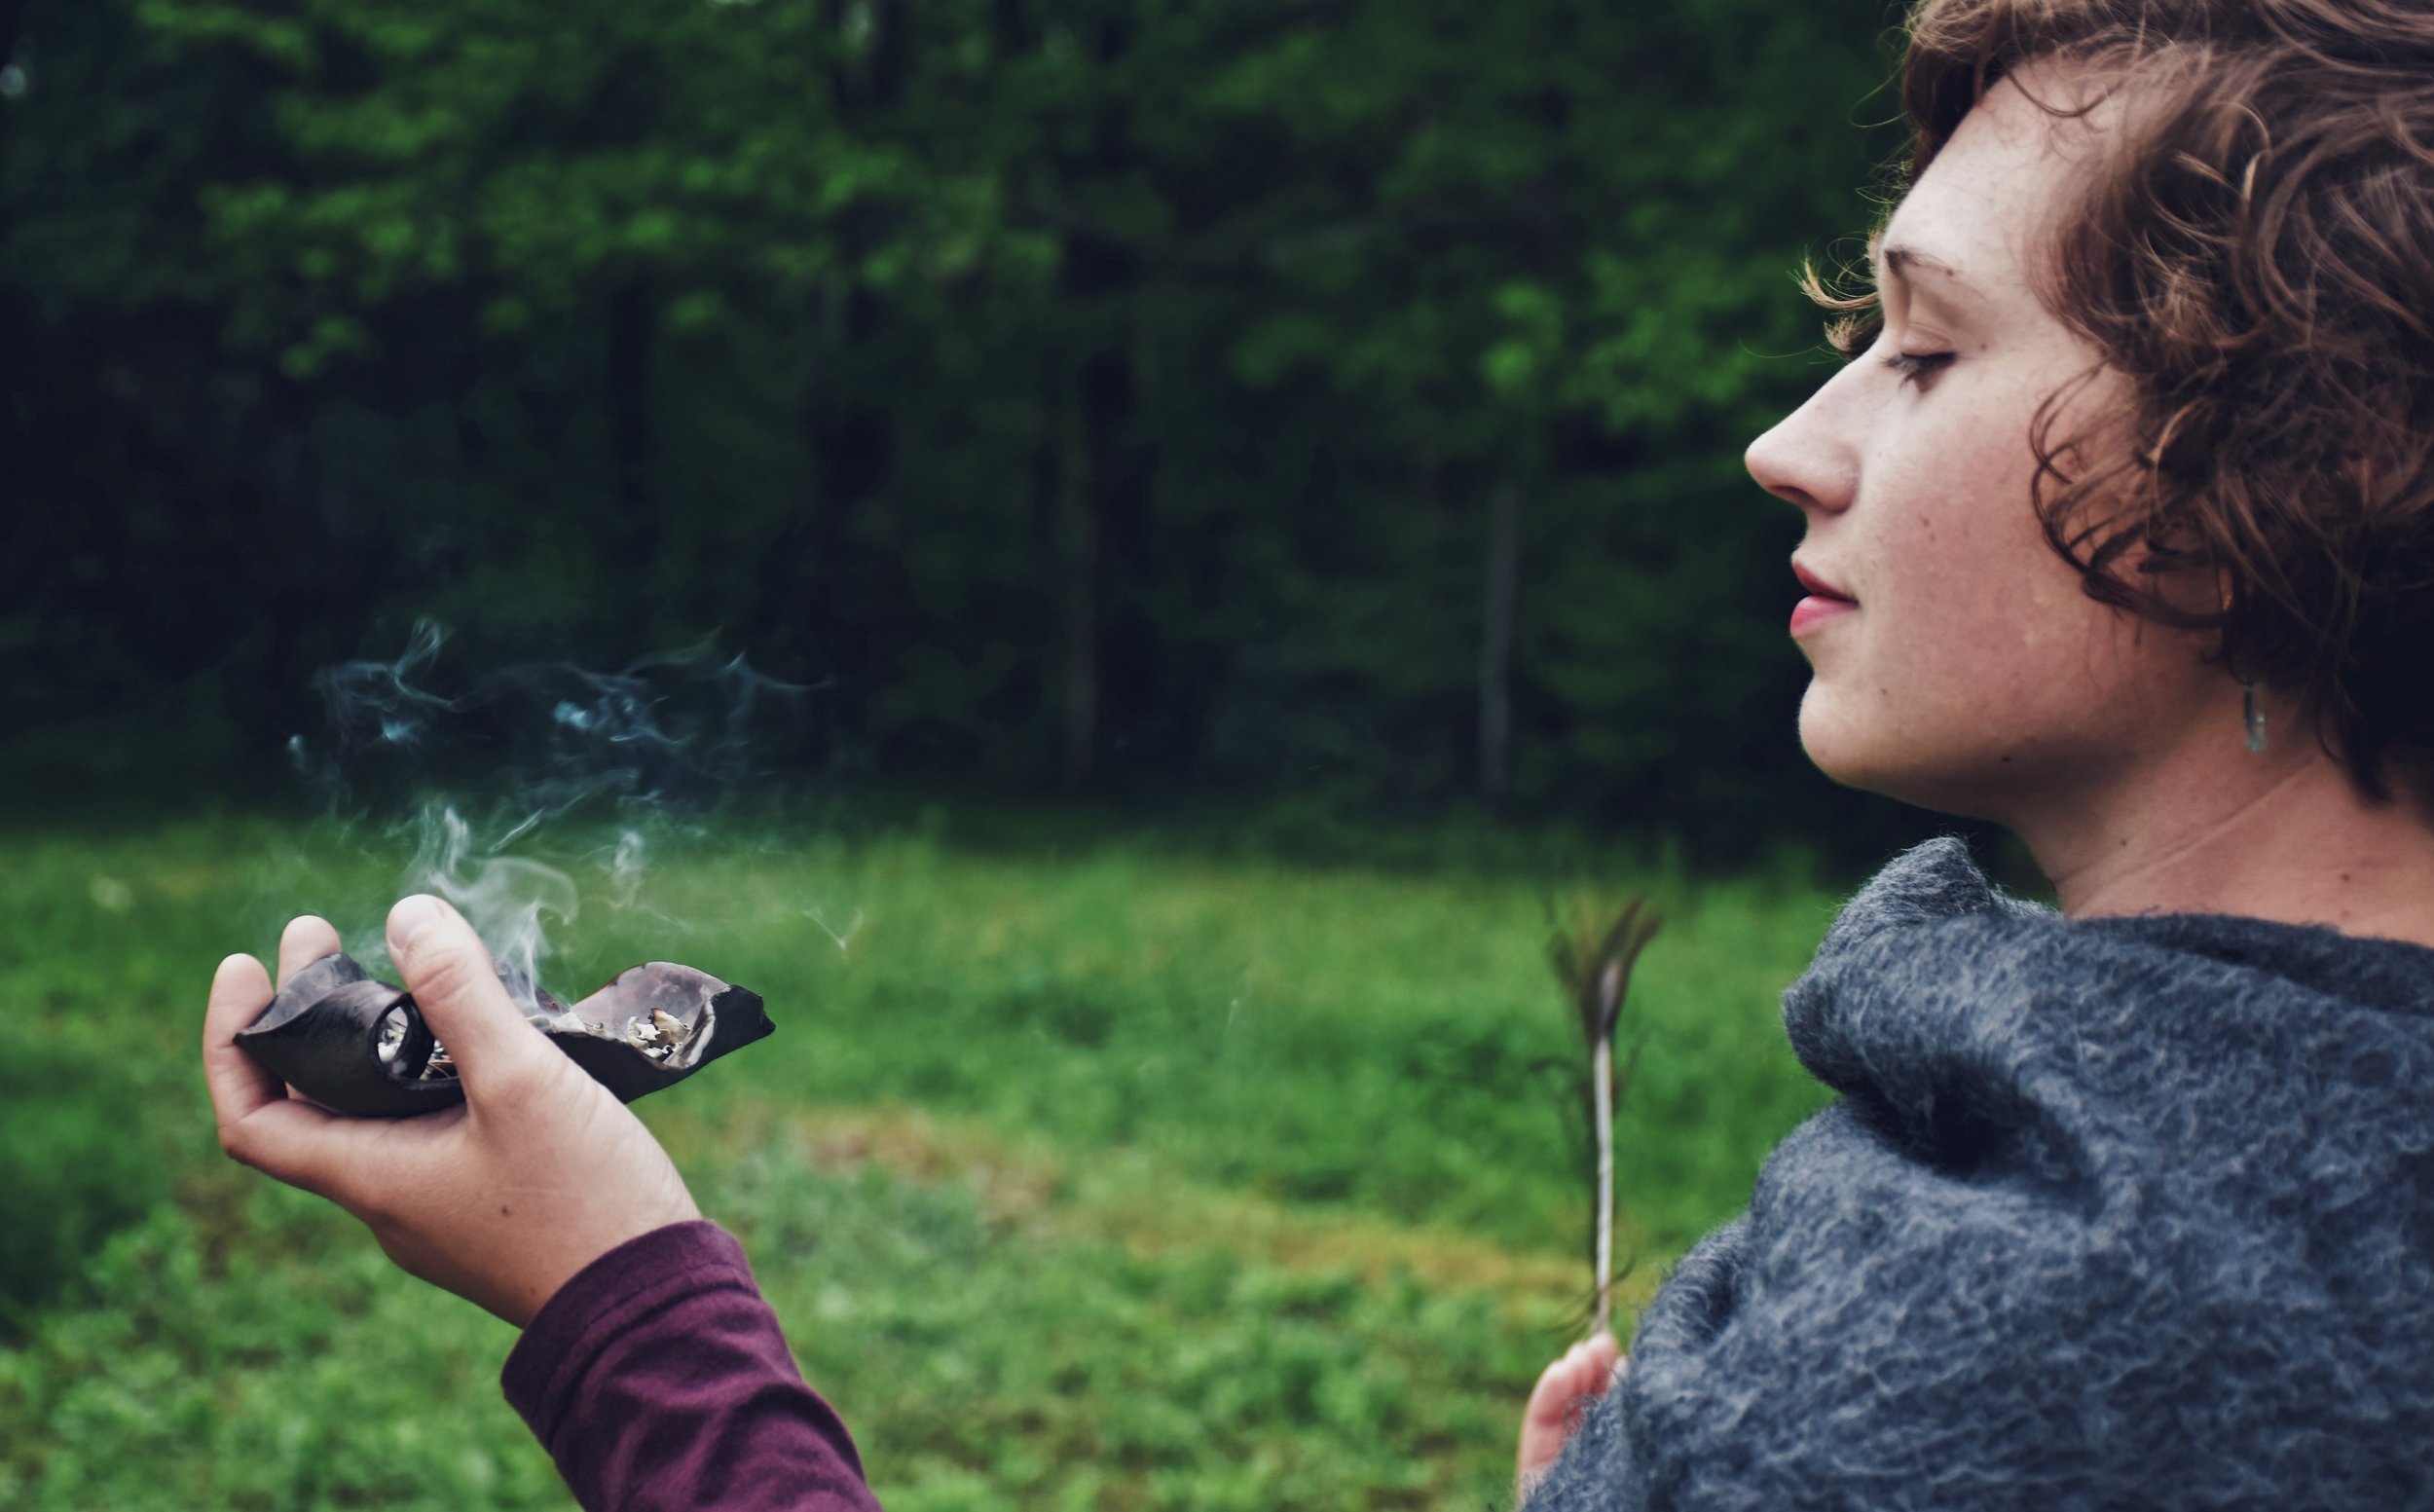 Amanda Midkiff of Locust Light farm smudging burning herbs in sacred ritual sacred ceremony